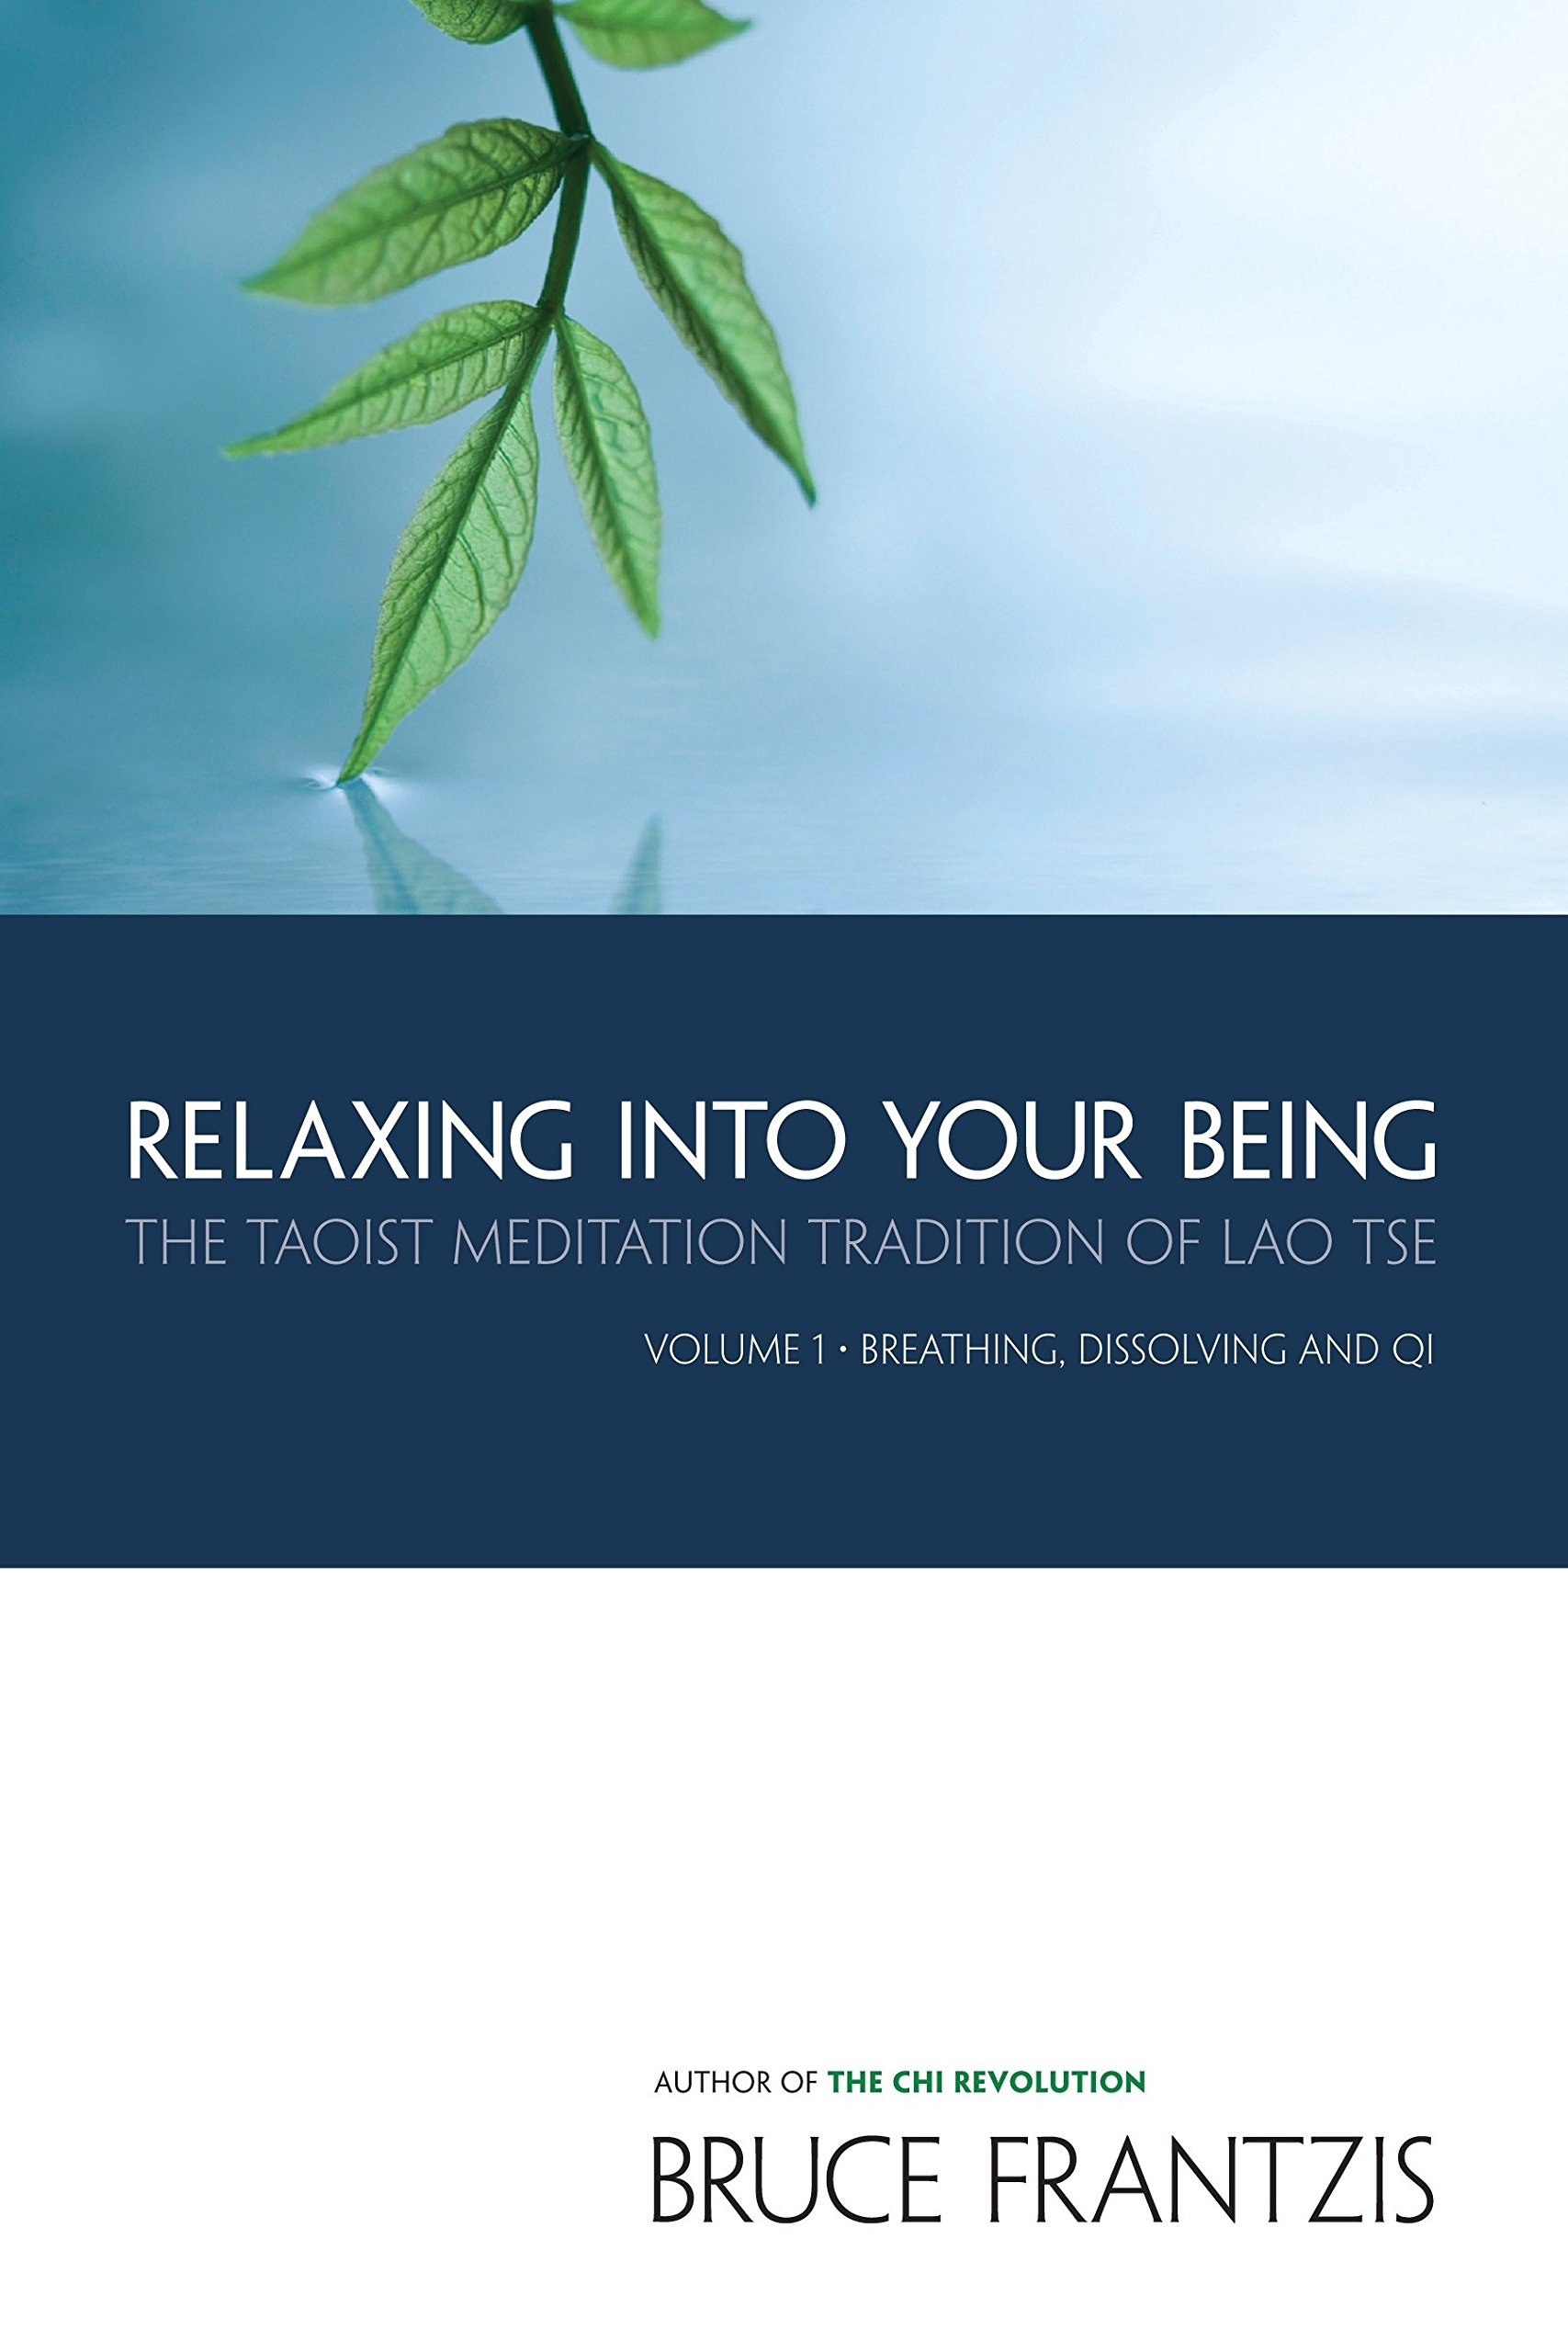 Relaxing into Your Being: The Taoist Meditation Tradition of Lao Tse